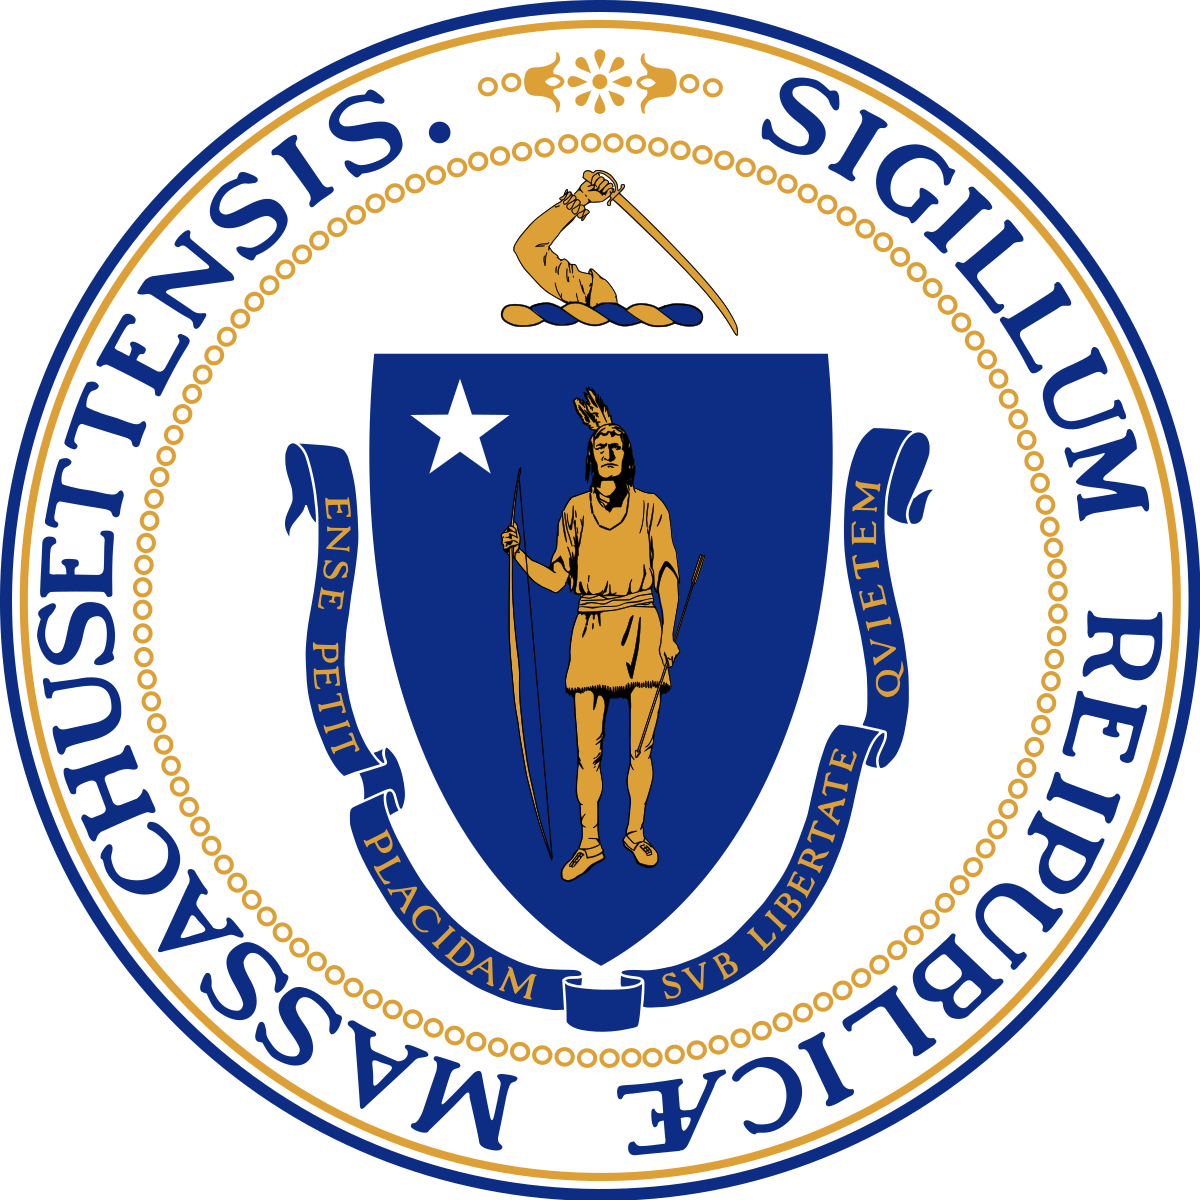 Massachusetts state police clipart svg free stock Seal of Massachusetts - Wikipedia svg free stock